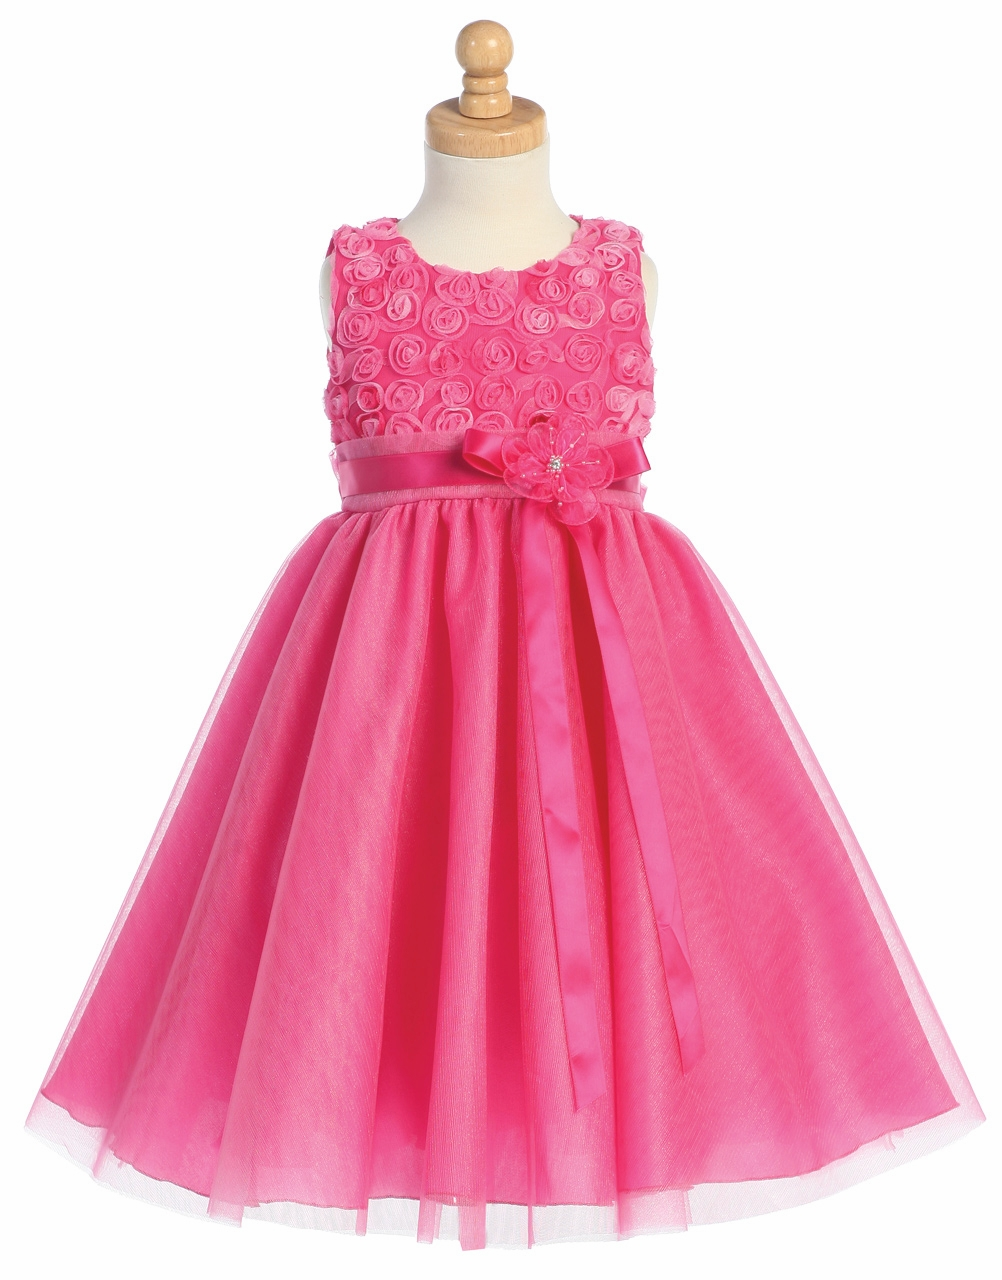 f2eddf4b2f6 ... Dresses   Fuchsia Embroidered Tulle Bodice w Tulle Skirt. Click to  Enlarge ...